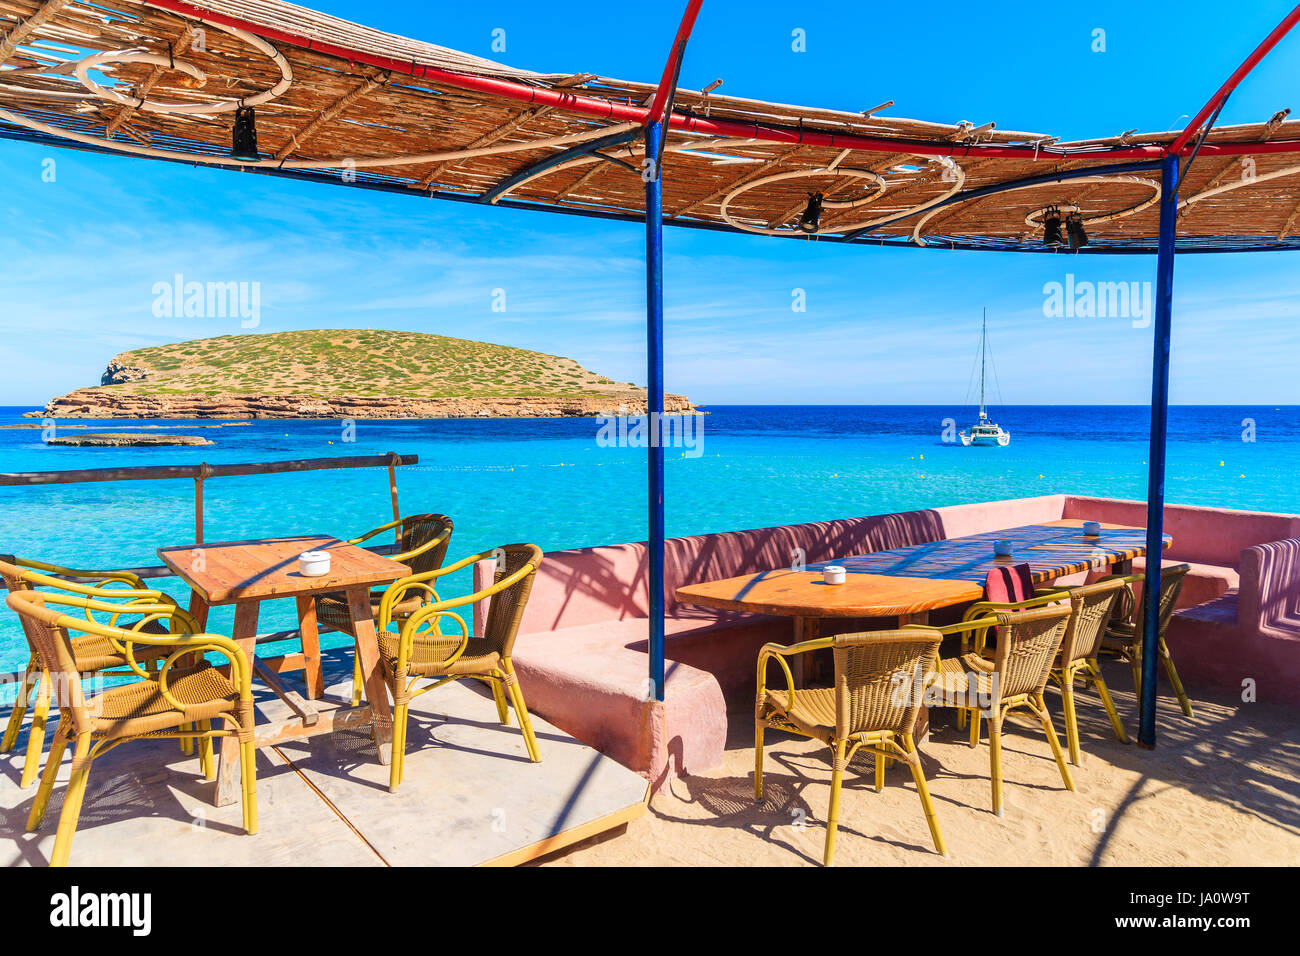 IBIZA ISLAND, SPAIN - MAY 17, 2017: Coastal bar with beautiful sea view on Cala Comte beach, Ibiza island, Spain. - Stock Image